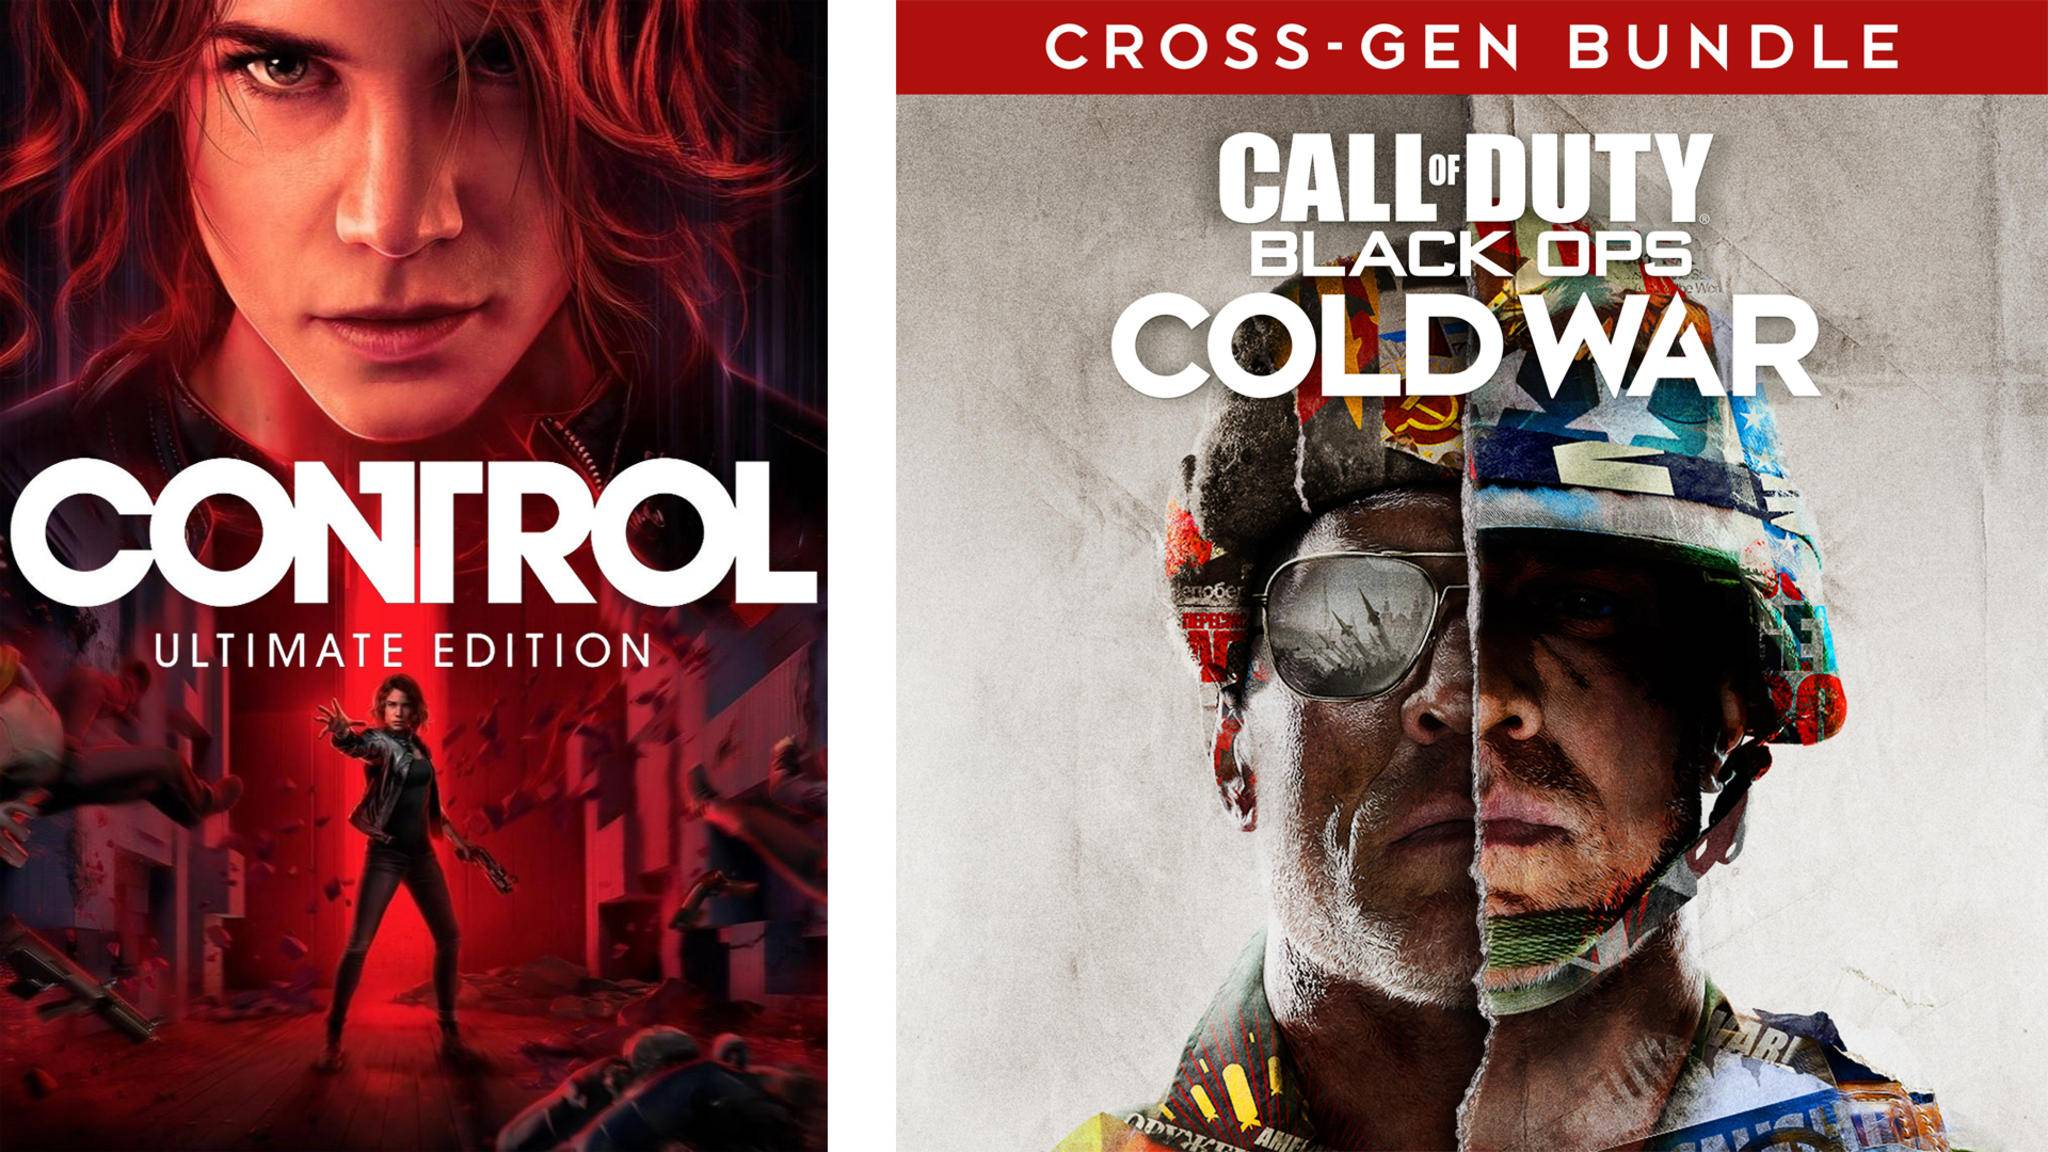 Control-Ultimate-Edition-Call-of-Duty-Black-Ops-Cold-War